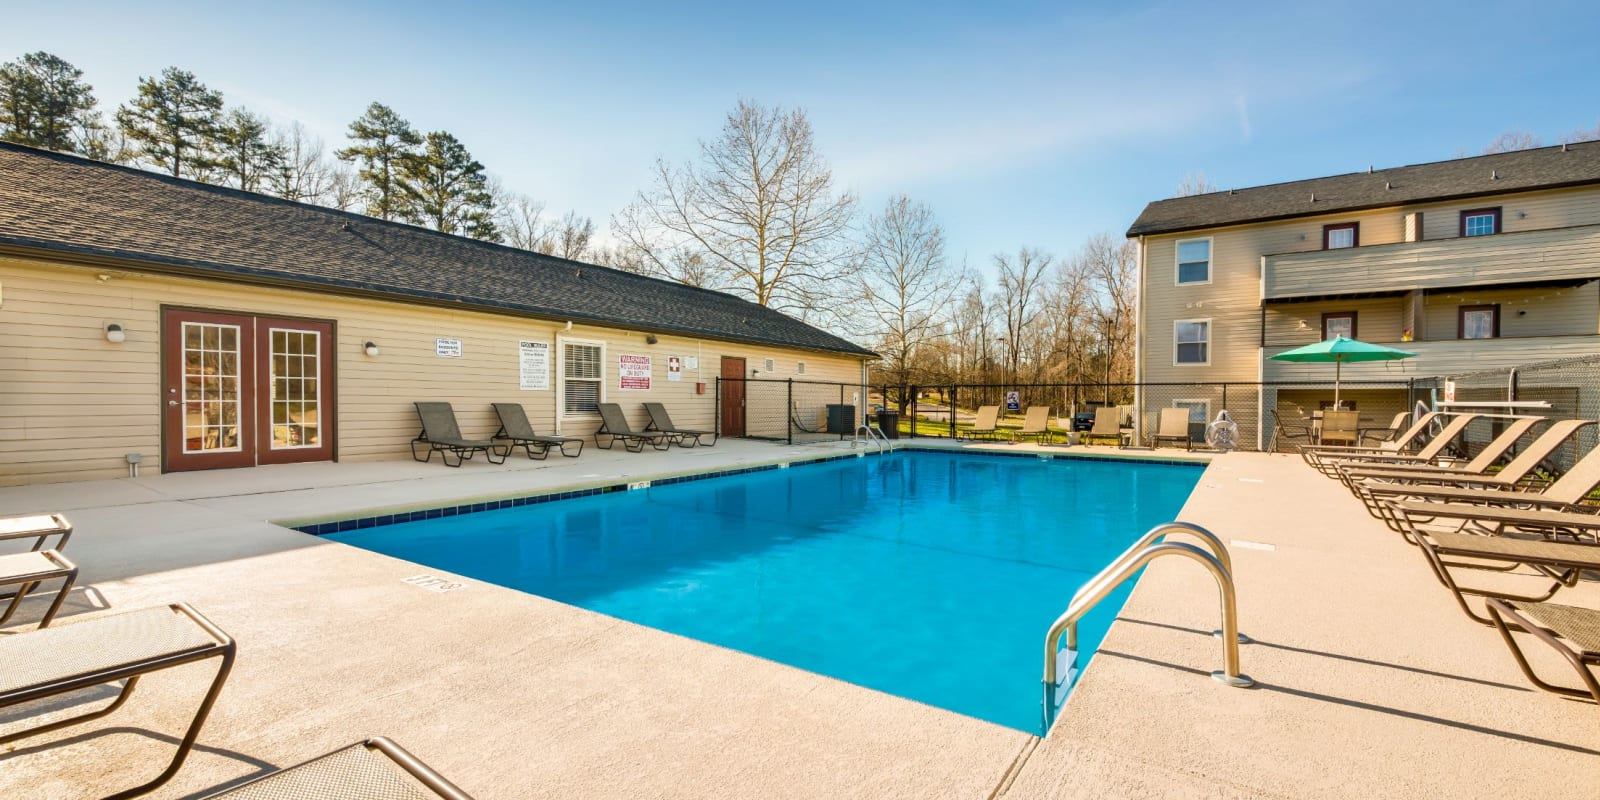 Swimming pool with tables and chairs for poolside picnics at Alexander Station Apartment Homes in Salisbury, North Carolina